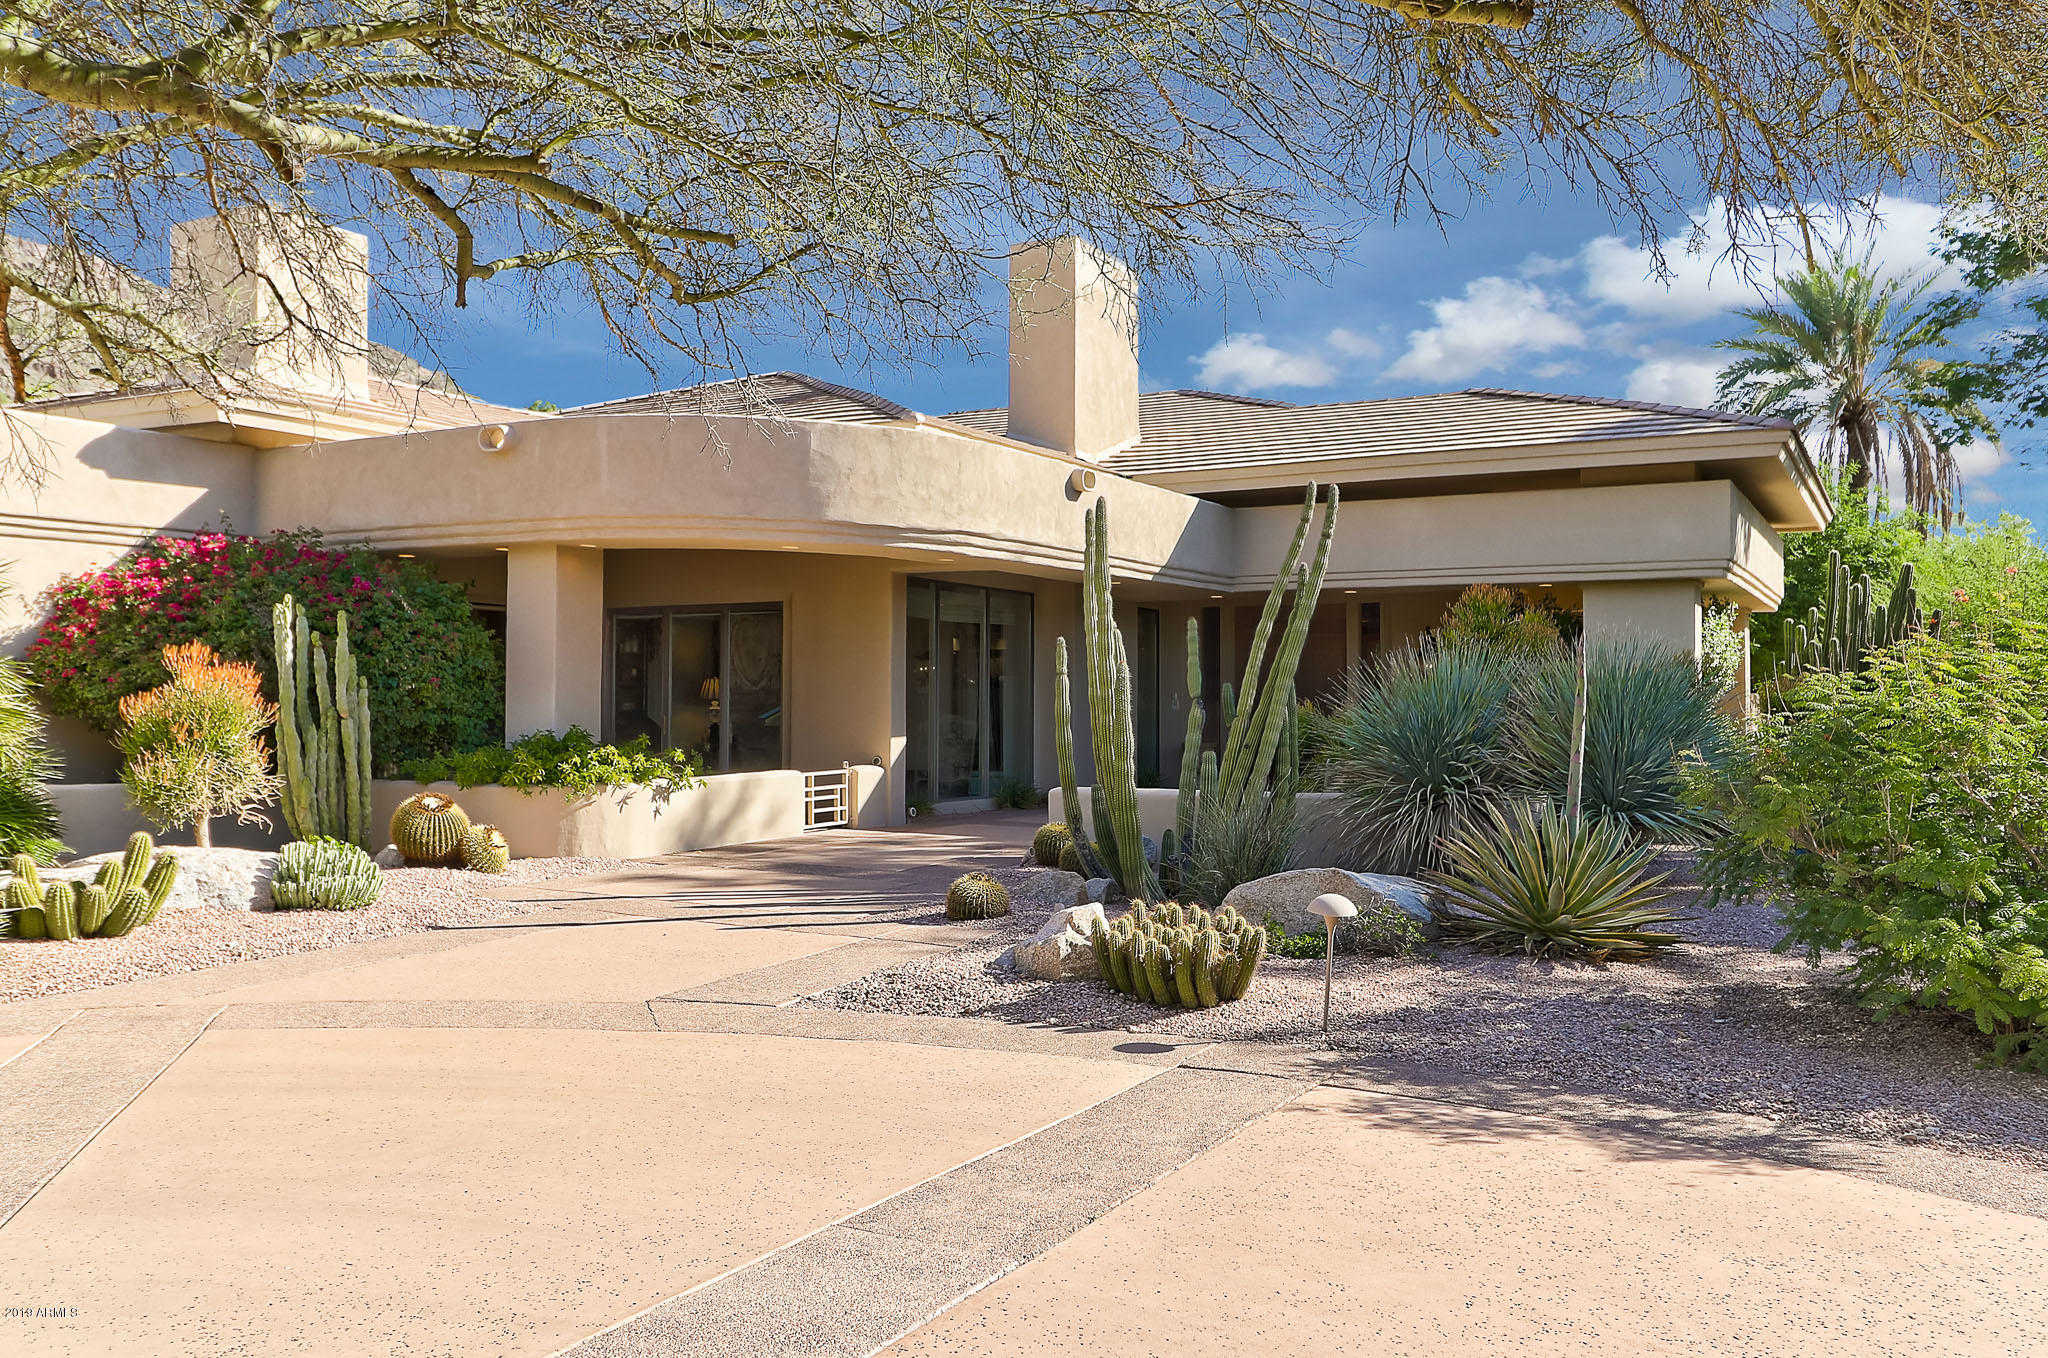 $2,695,000 - 4Br/5Ba - Home for Sale in Whispering Hills, Paradise Valley